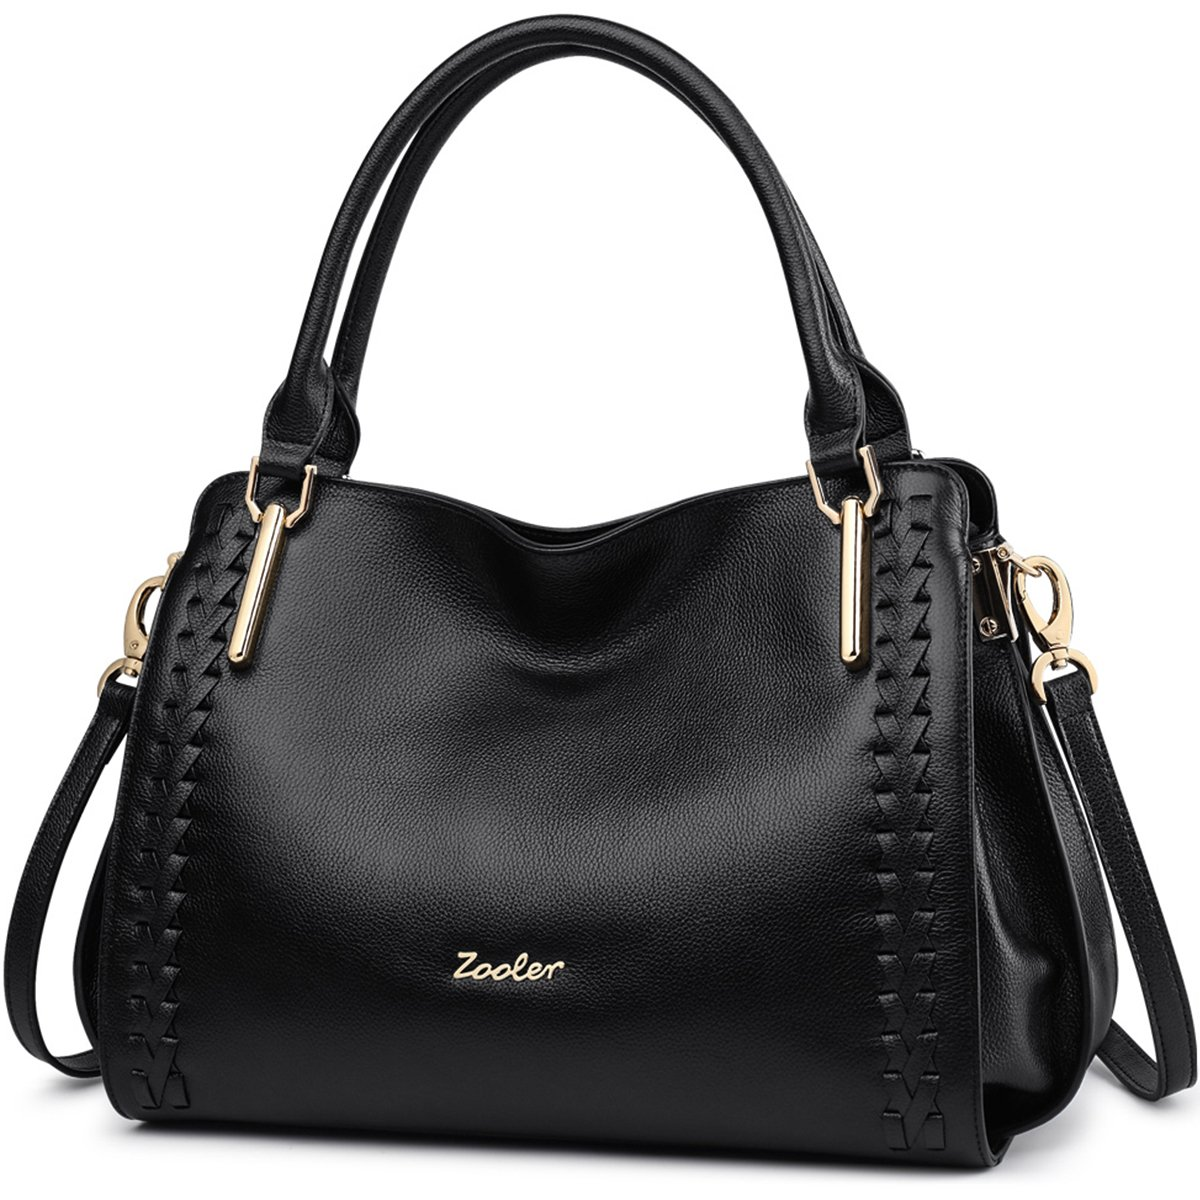 ZOOLER Leather Purses and Handbags for Women Shoulder Bags Satchel Lady's Tote